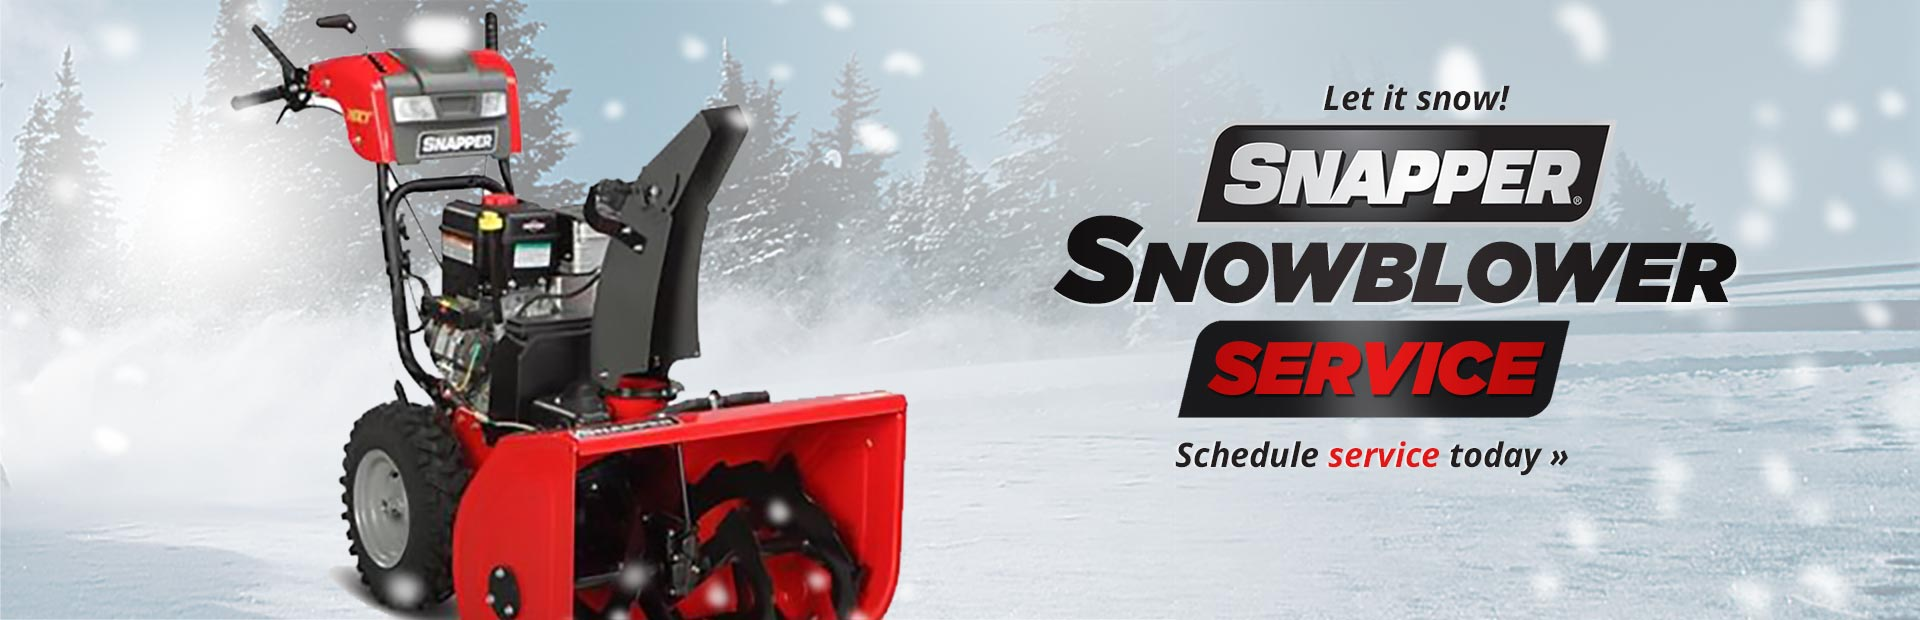 Snapper Snowmobile Service: Click here to view our service list!